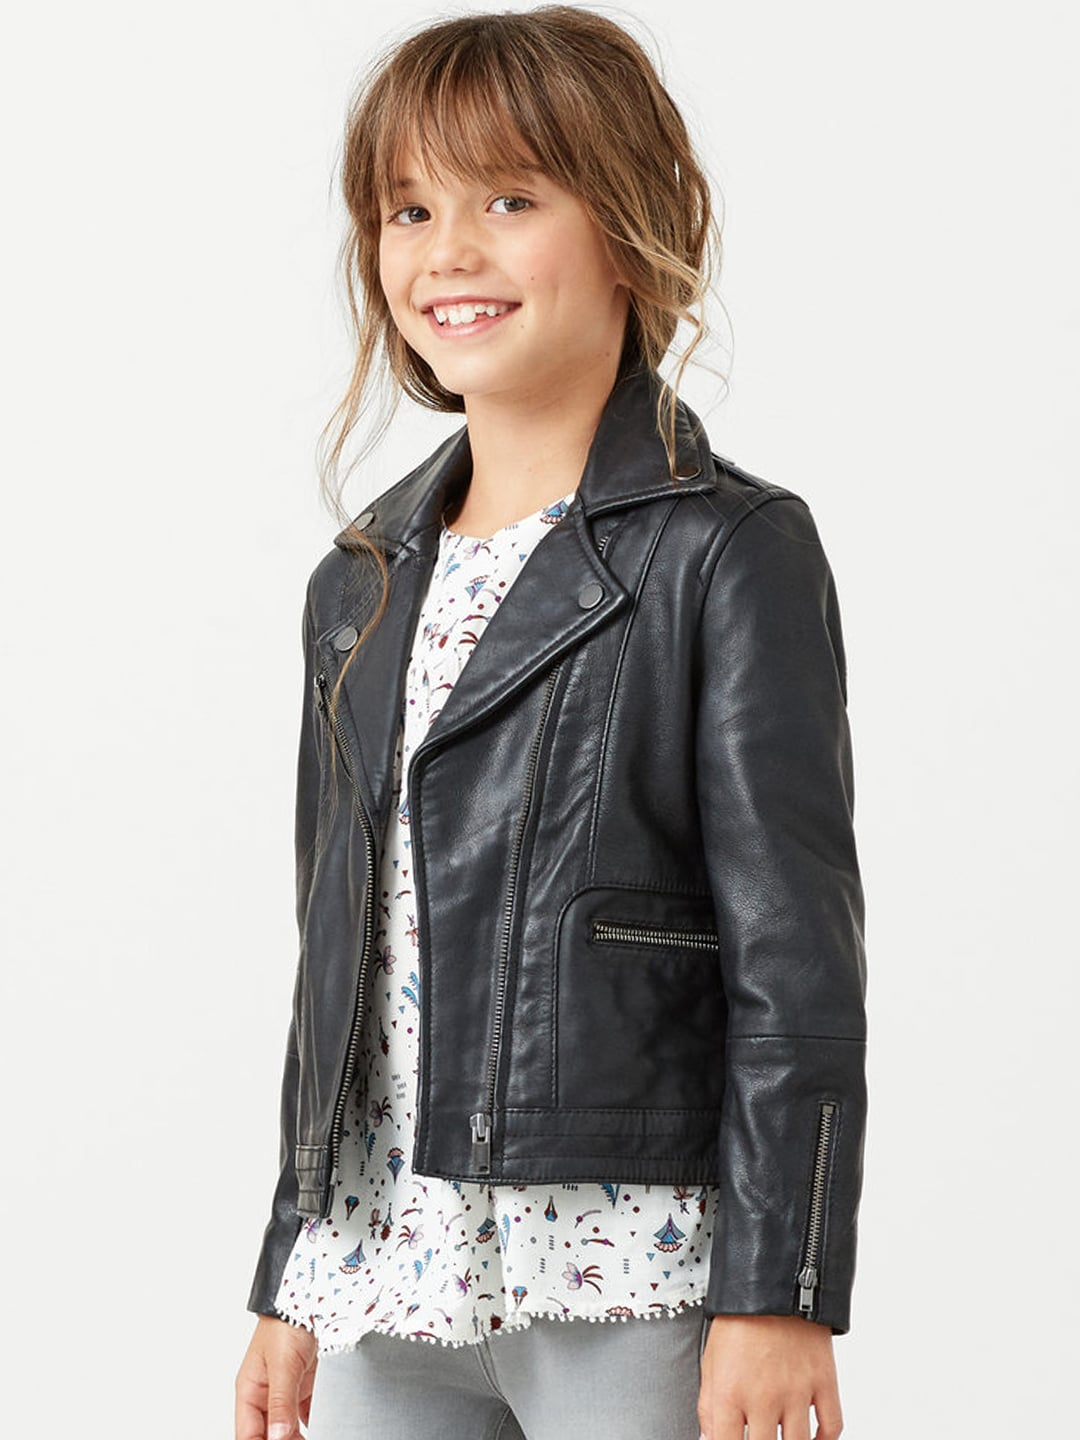 Kids Coats & Jackets for Boys & girls When the temperature dips, kids can find protection from the weather, stay comfortable and look great with our collection of jackets and coats. Discover our abundant outerwear choices for boys and girls.